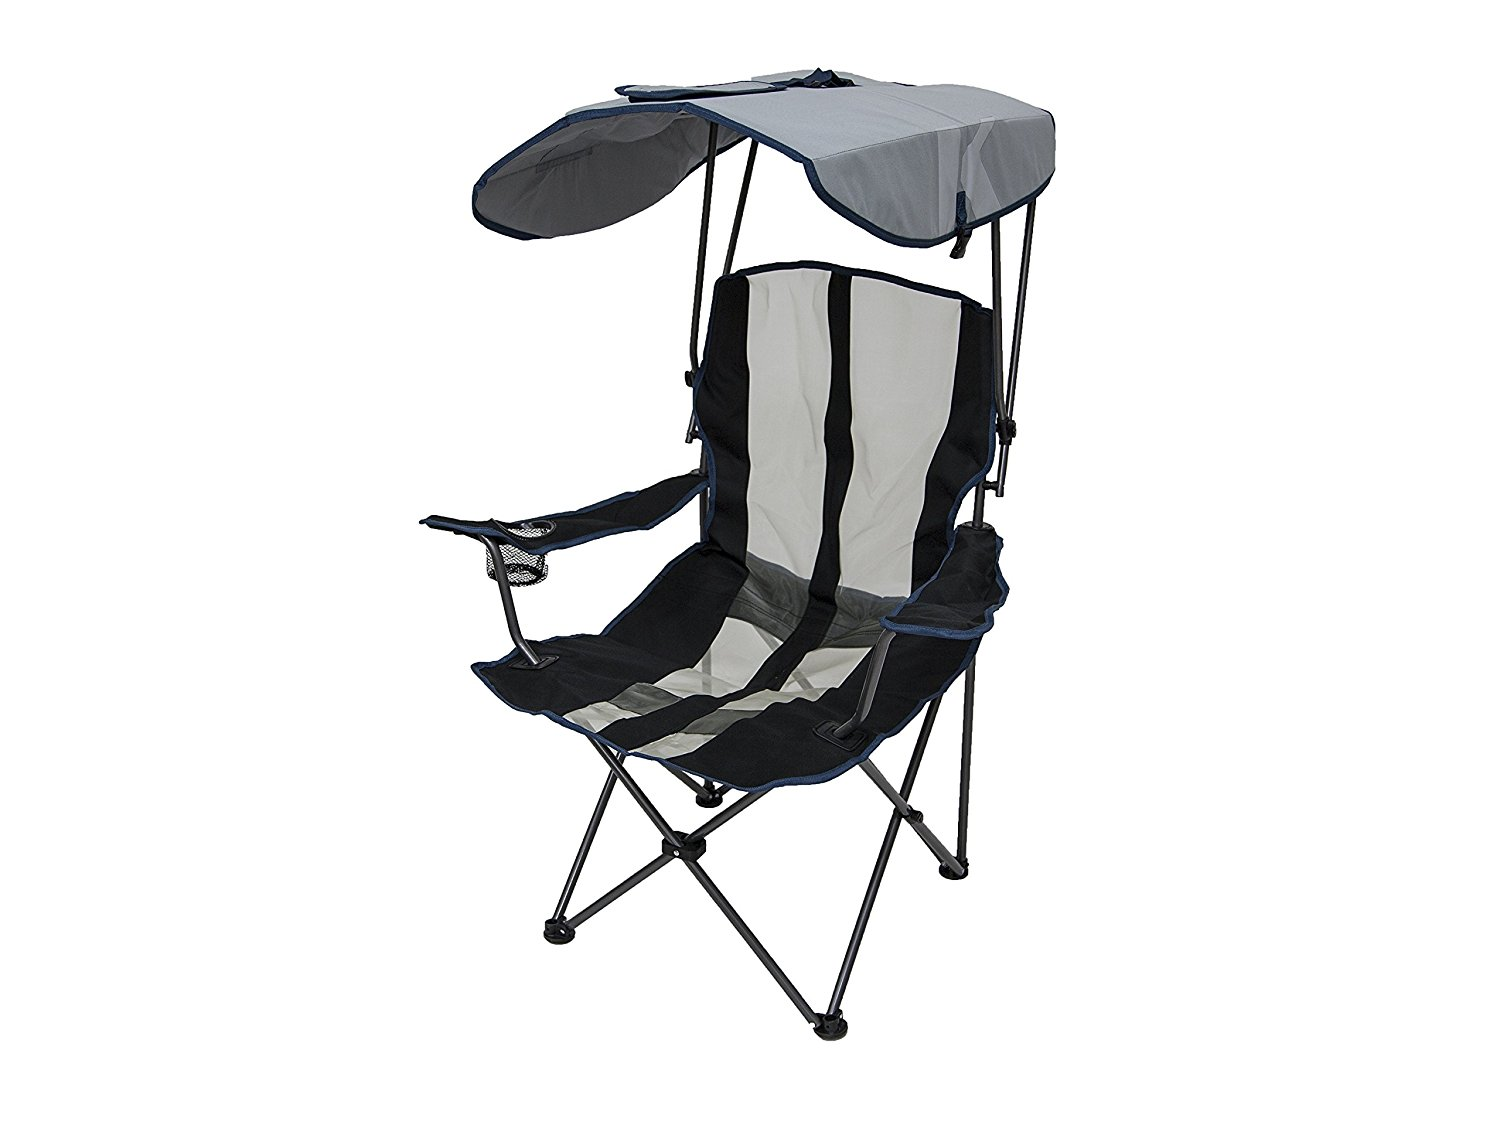 Canopies And Chairs : Review of the top best camping chairs in sorted